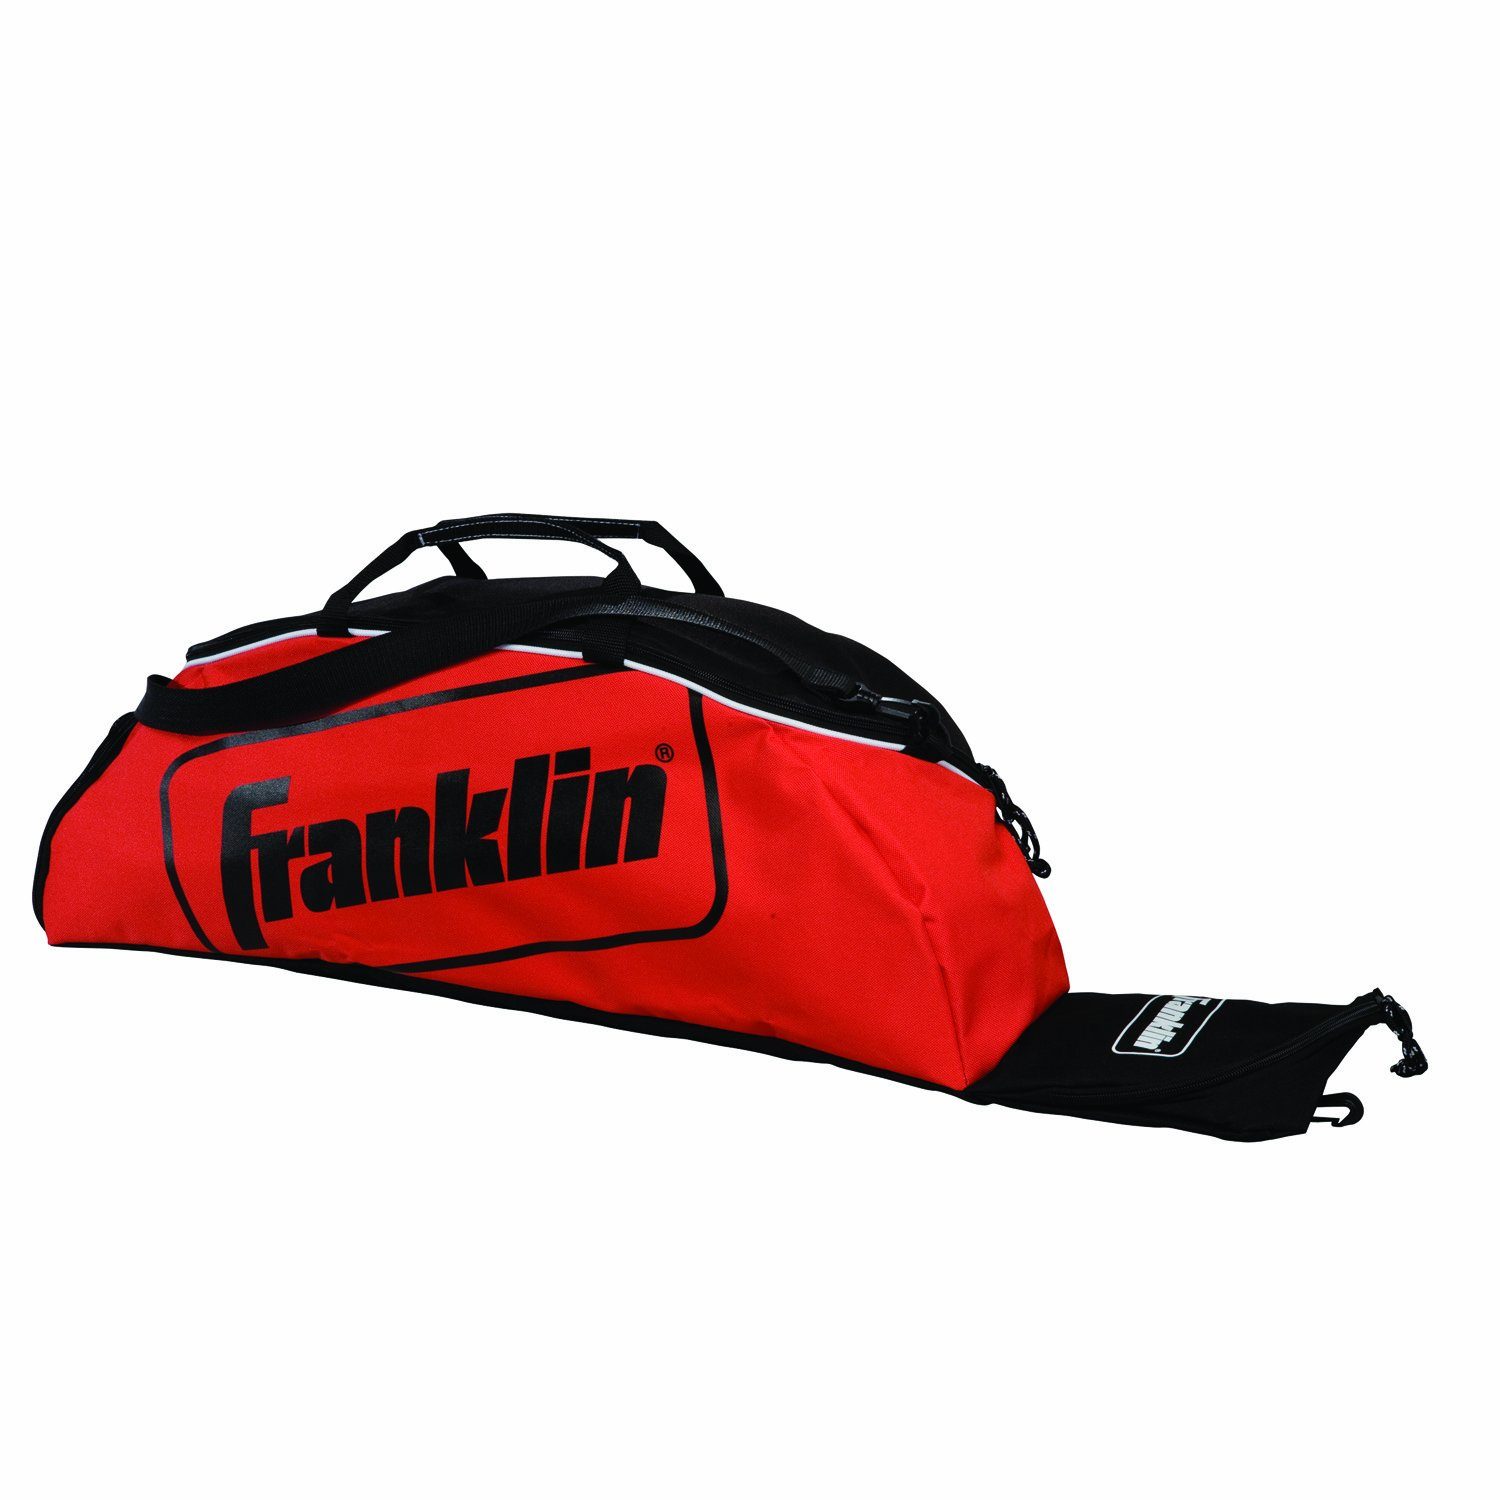 Franklin Sports Youth Baseball Bat Bag - Kids Teeball, Softball, Baseball Equipment Bag - Holds Bat, Helmet, Cleats and More - Red by Franklin Sports